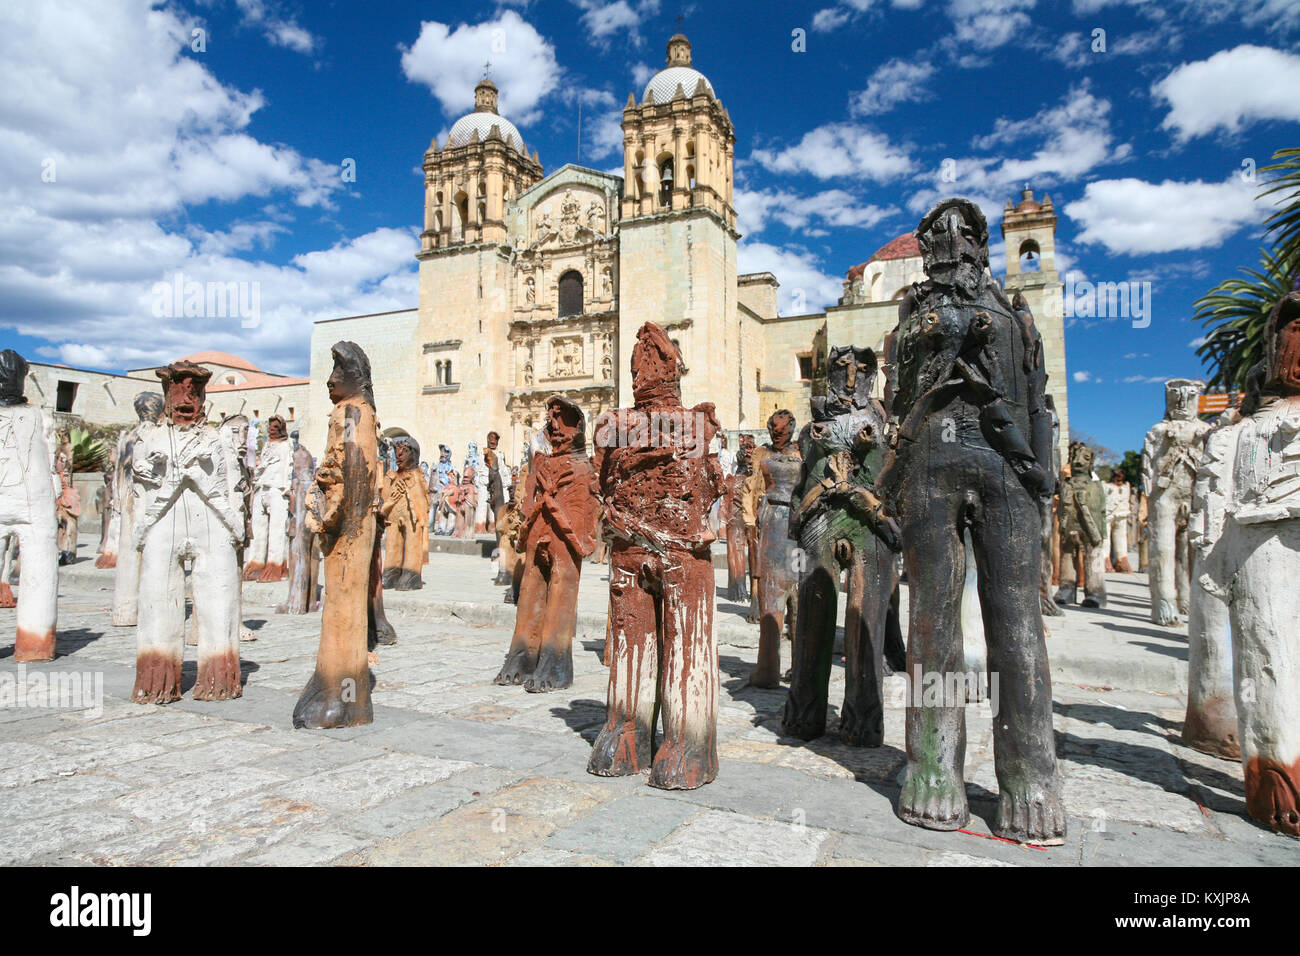 OAXACA, MEXICO - MARCH 7th, 2012: Sculpture art installation in front of the facade of the Church of Santo Domingo Stock Photo